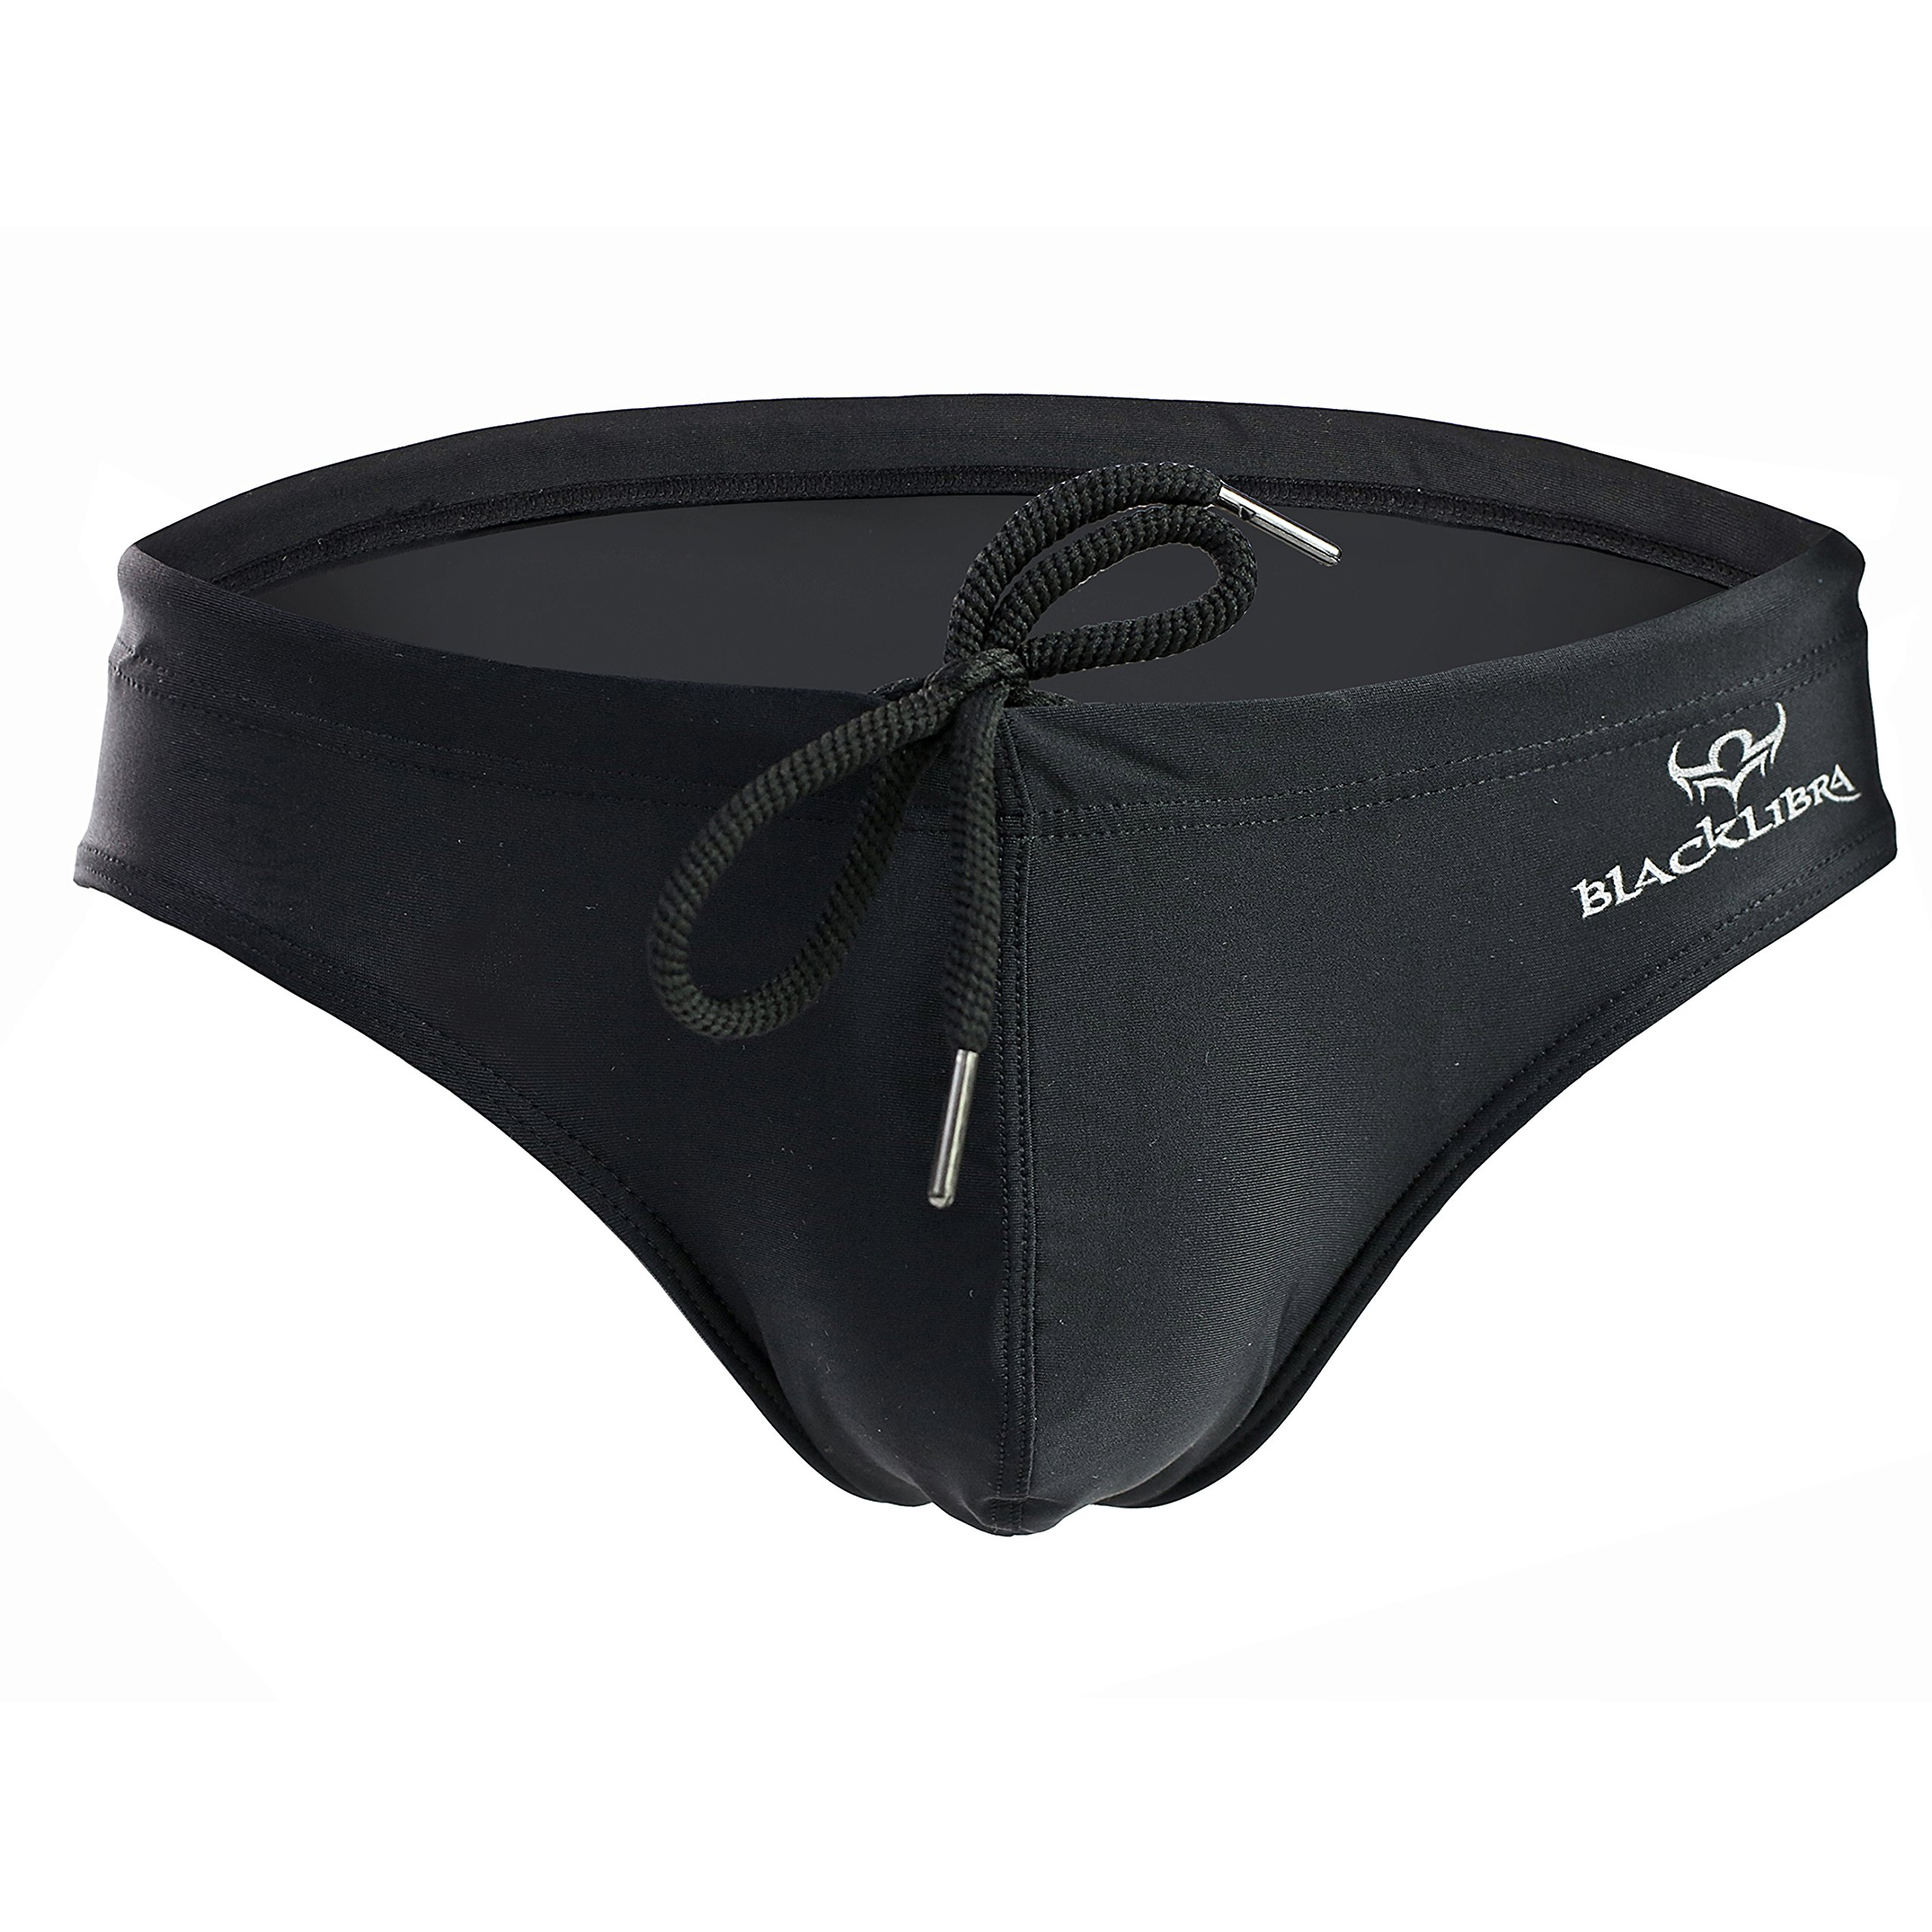 Beuniclo Men Swim Brief Summer Watersports Men Bikini Underwear (M, Black)